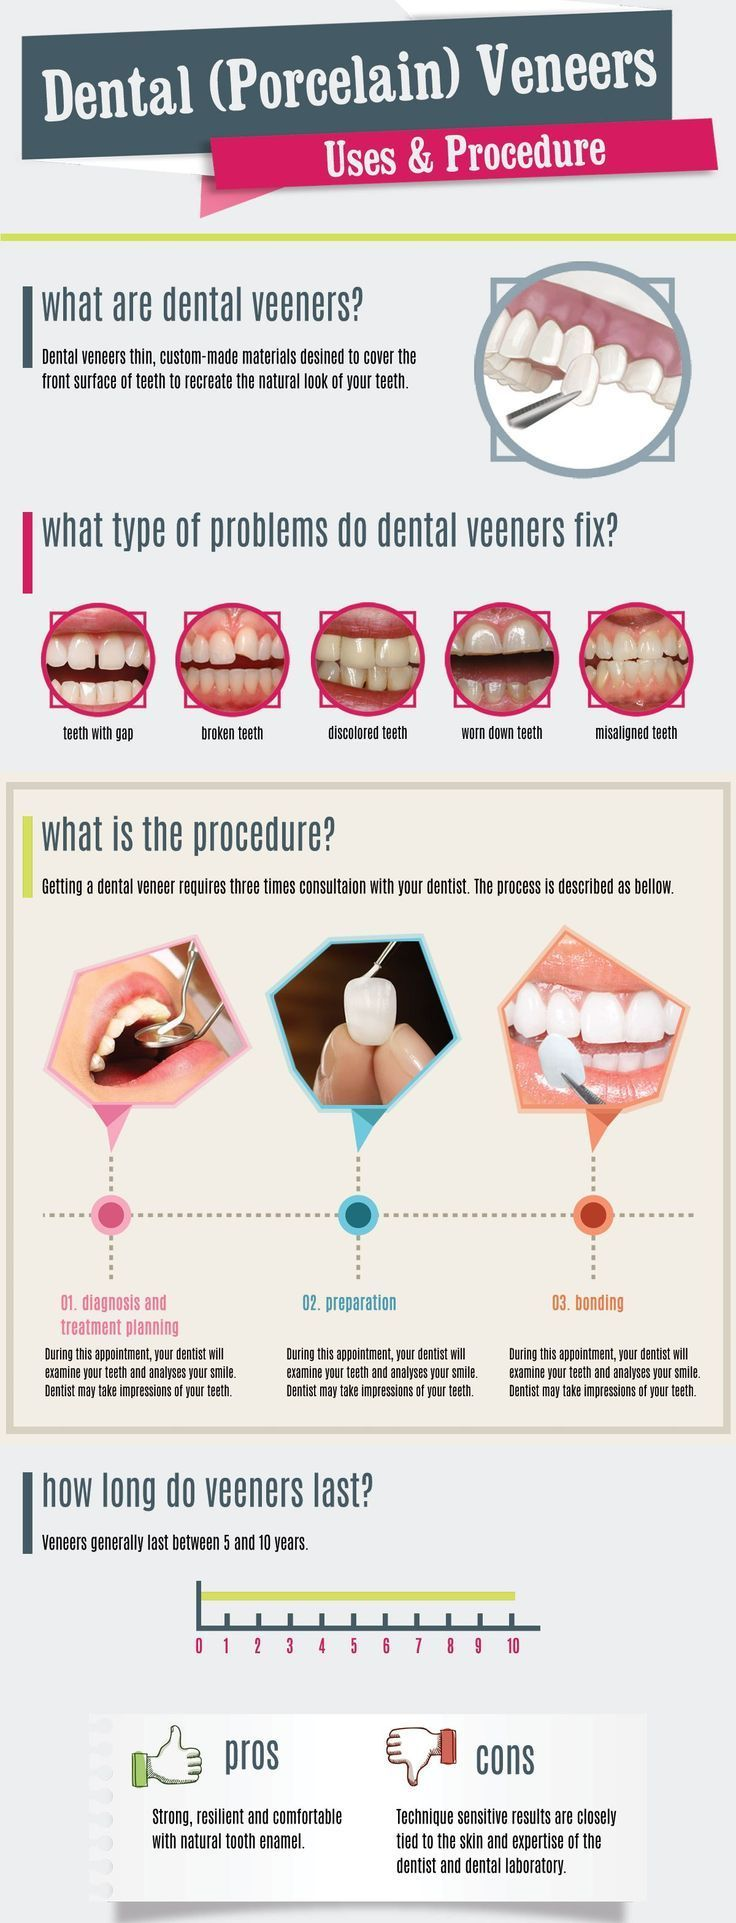 Dental facts you should know. #dentalfacts #dentalhealth #dentalhealthtips #dentalhygiene #dentalhygienist #dentalcare #oralhealth #oralhygiene #teeth #dentalfacts Dental facts you should know. #dentalfacts #dentalhealth #dentalhealthtips #dentalhygiene #dentalhygienist #dentalcare #oralhealth #oralhygiene #teeth #dentalfacts